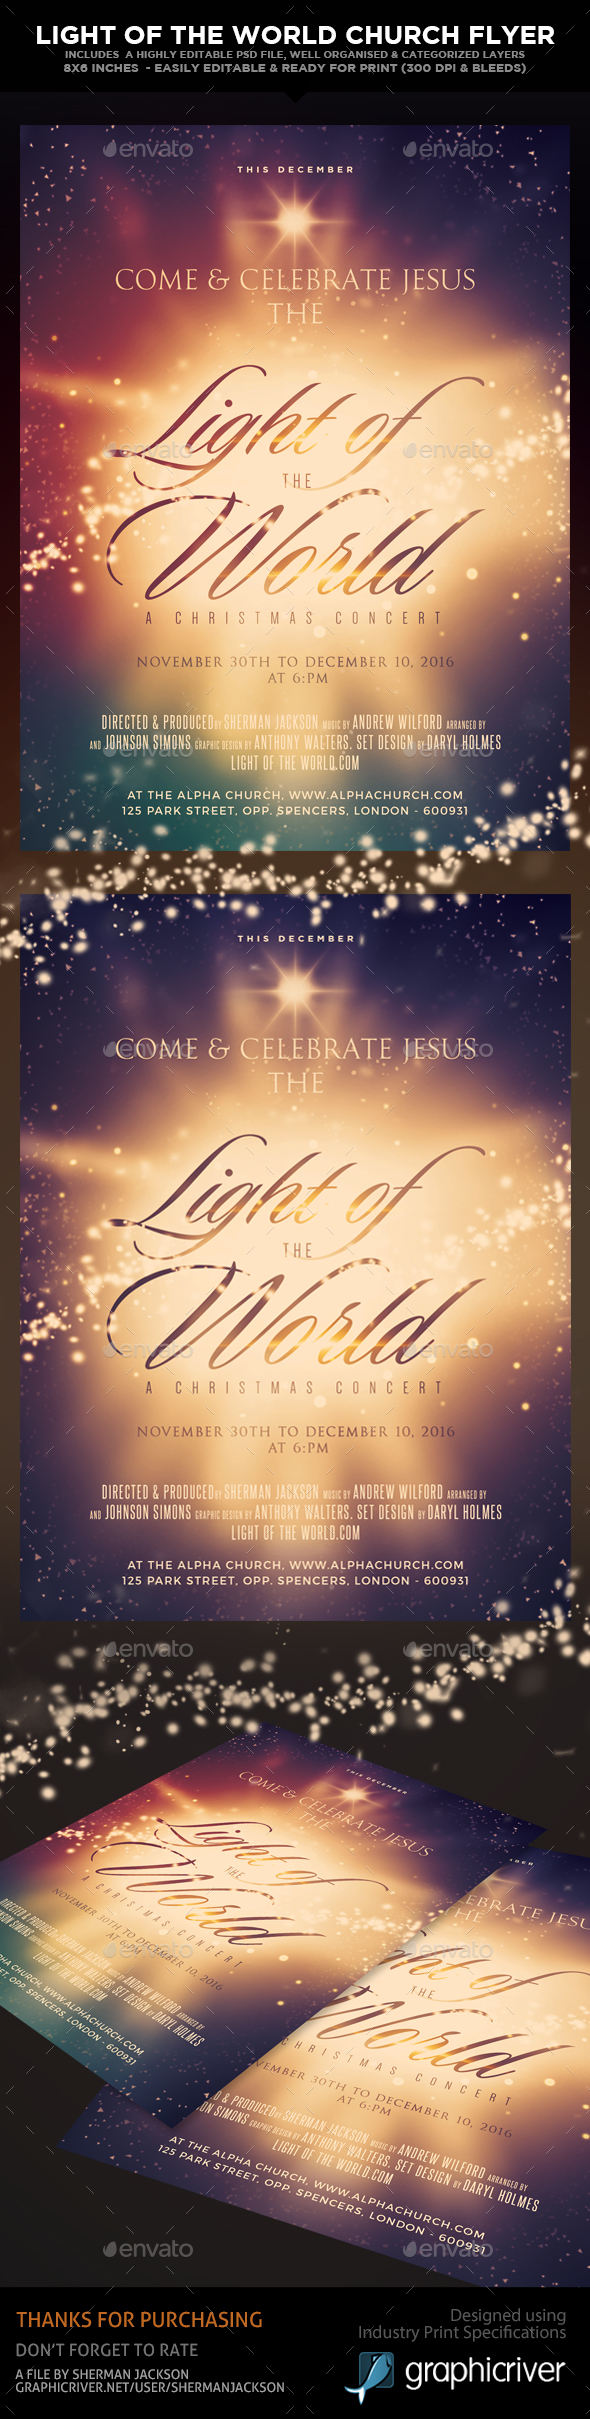 Light of the World - Church Christian Themed Flyer - Church Flyers